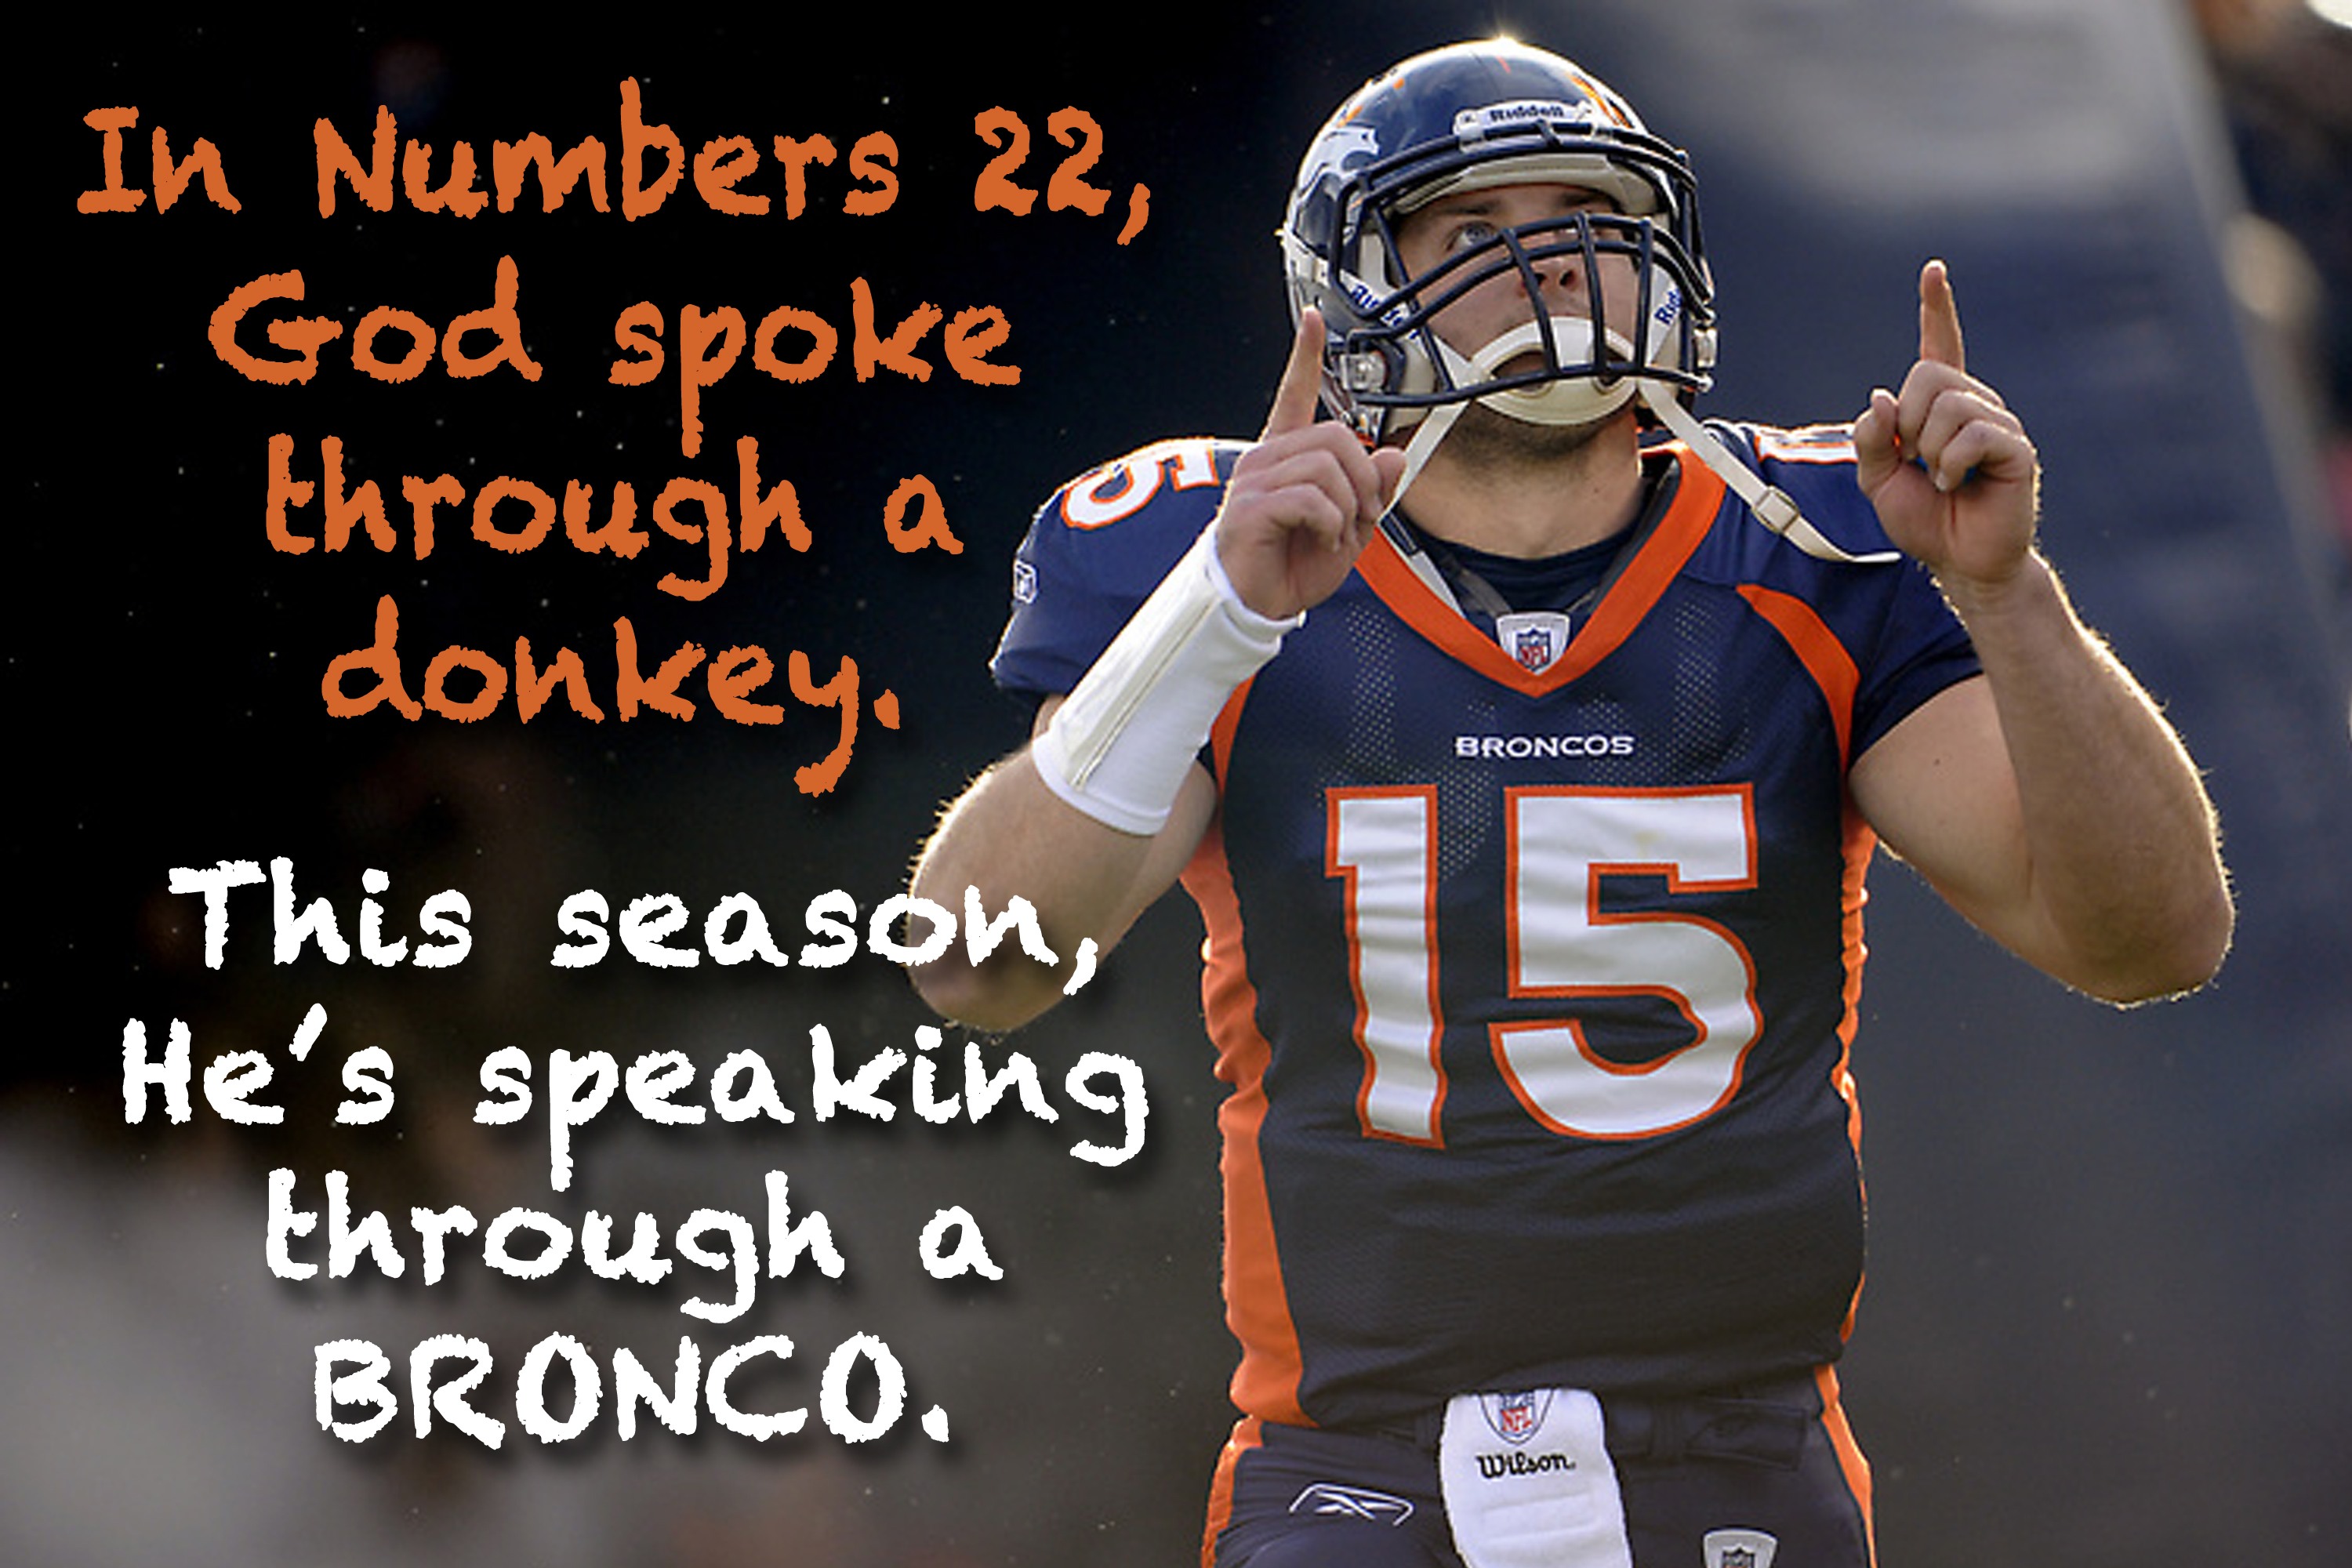 Tim Tebow Inspirational Quotes: Tim Tebow Quotes About God. QuotesGram